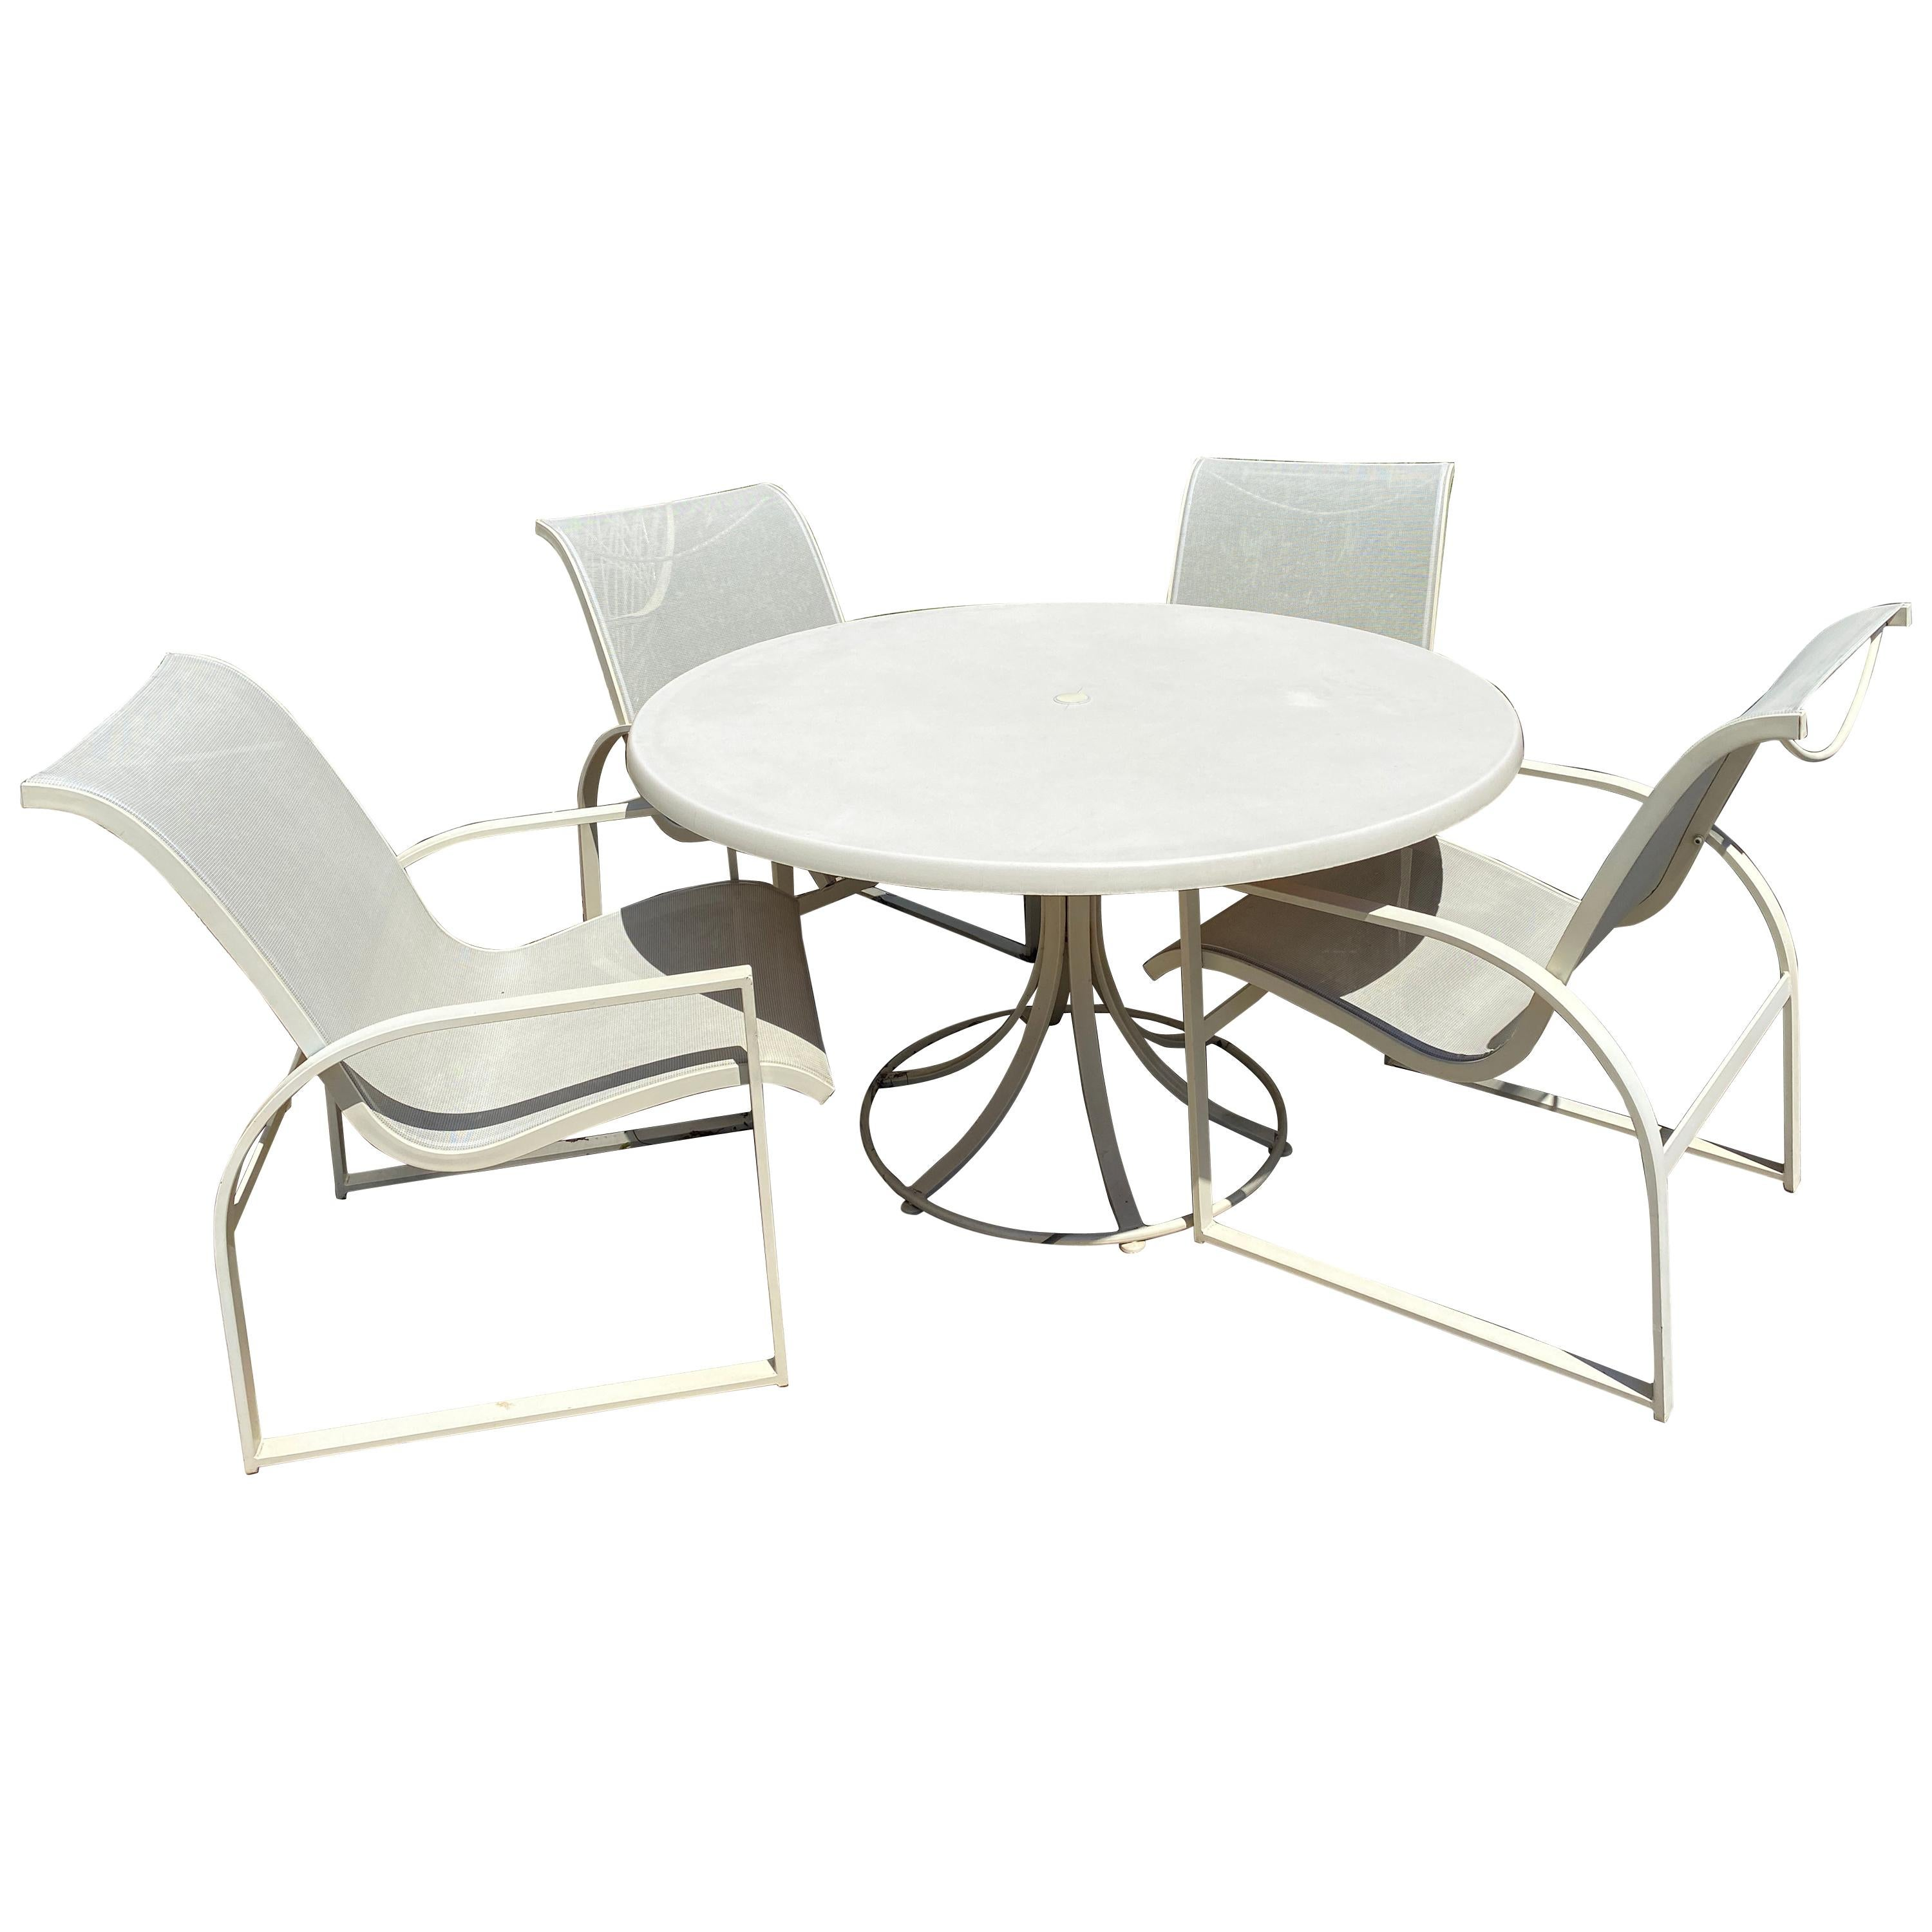 mid century modern woodard margarita patio dining set table 4 curved chairs